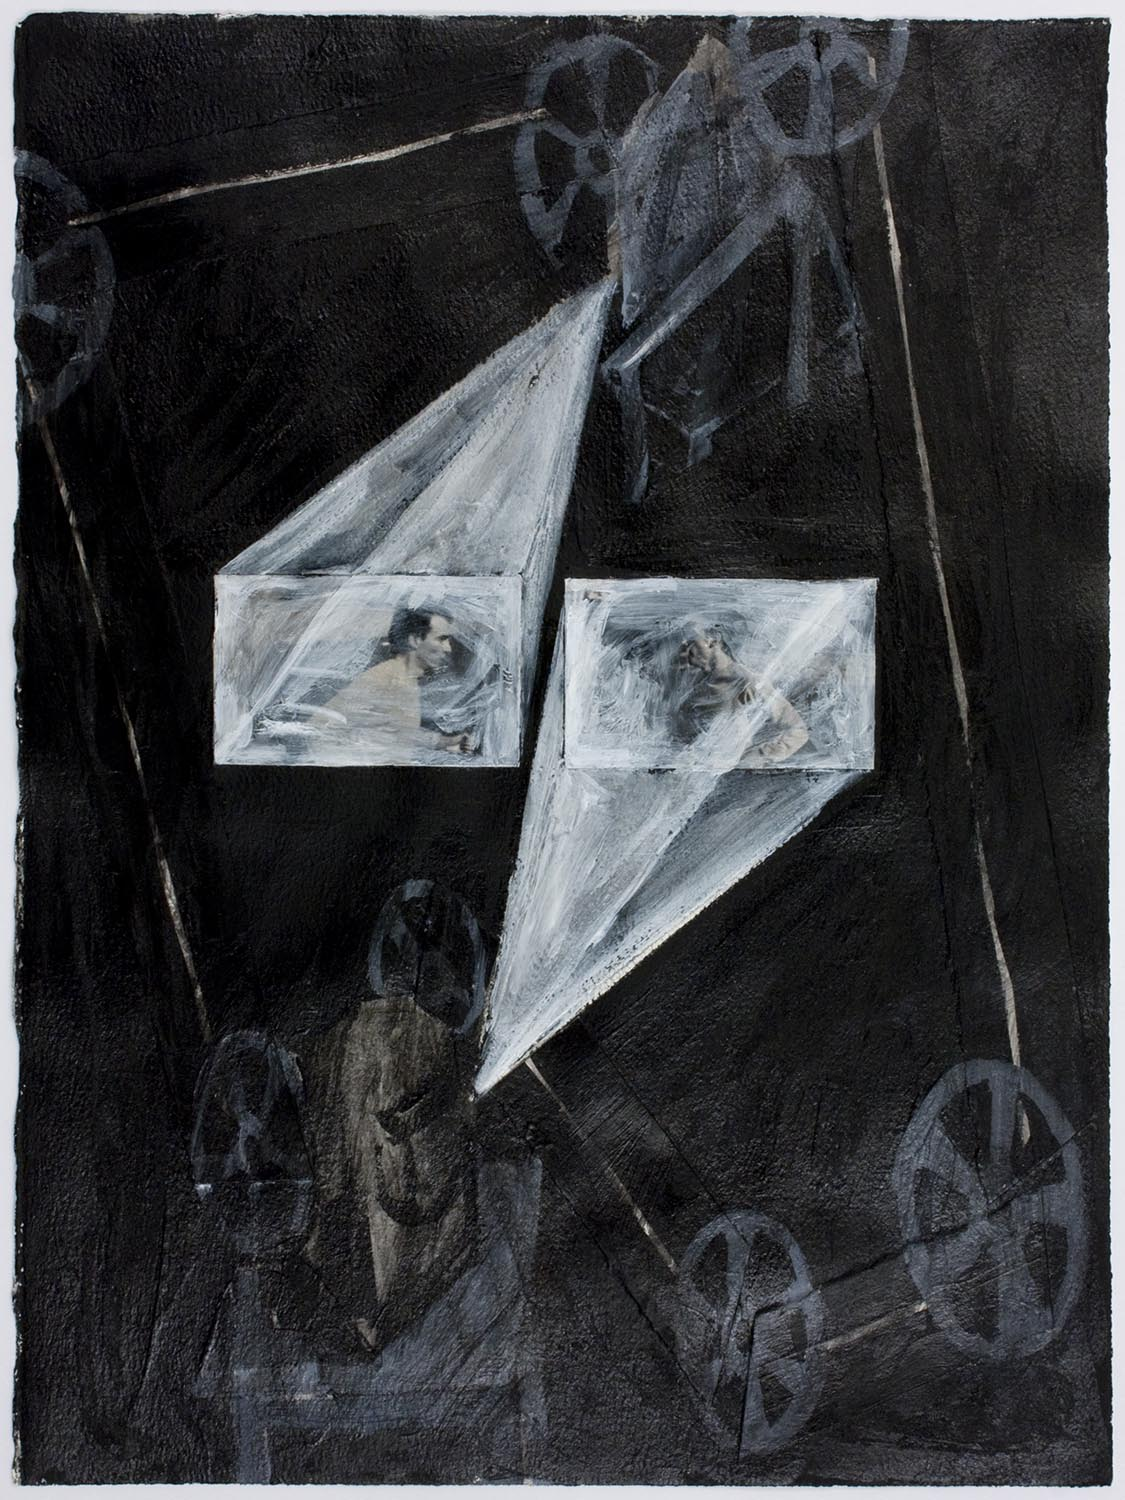 Double projection: K court (Double Projection: K Is Running), 1989